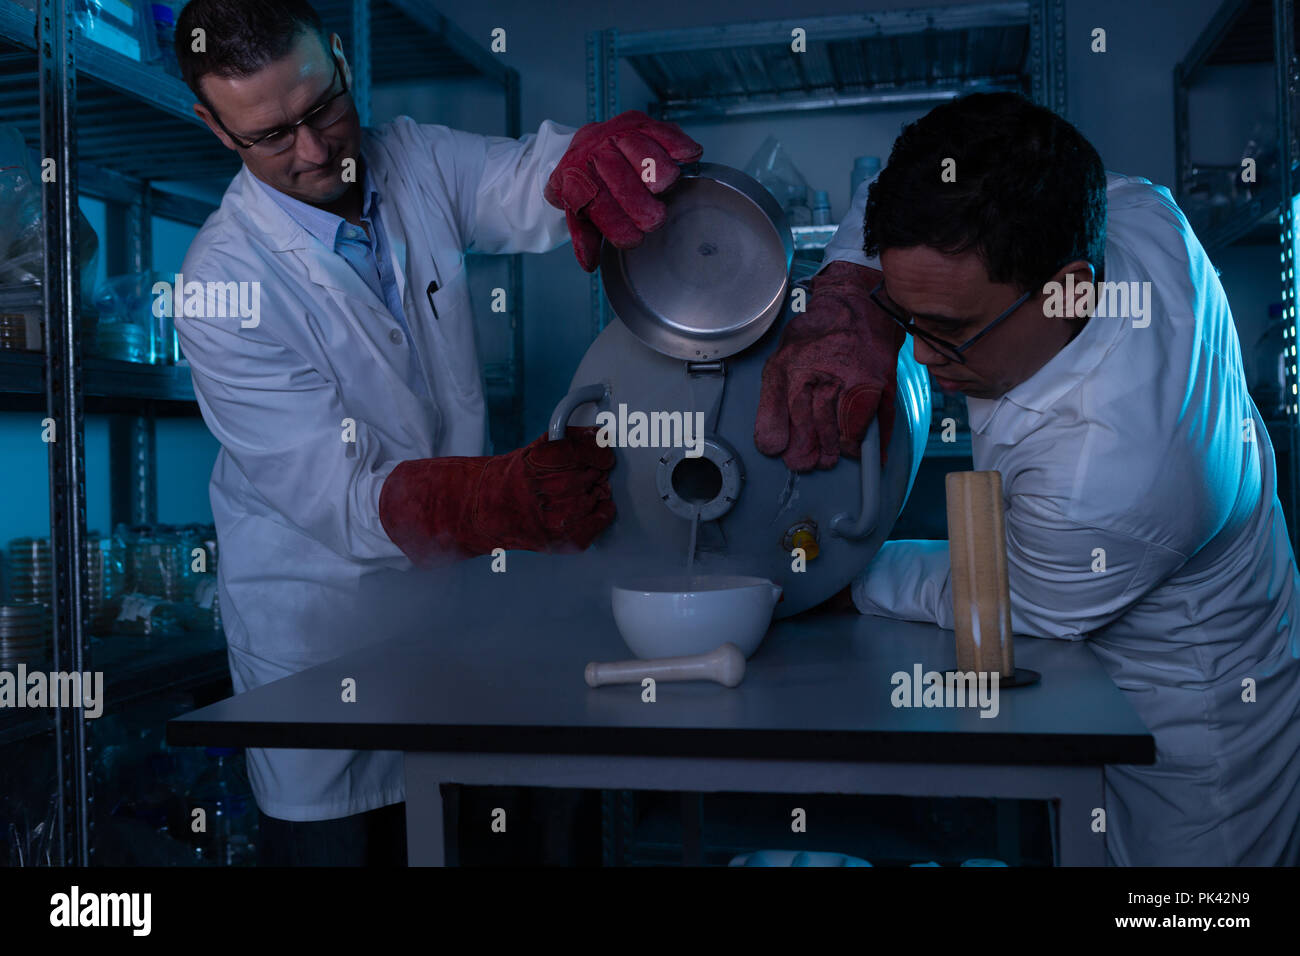 Male scientists pouring liquid in a bowl - Stock Image